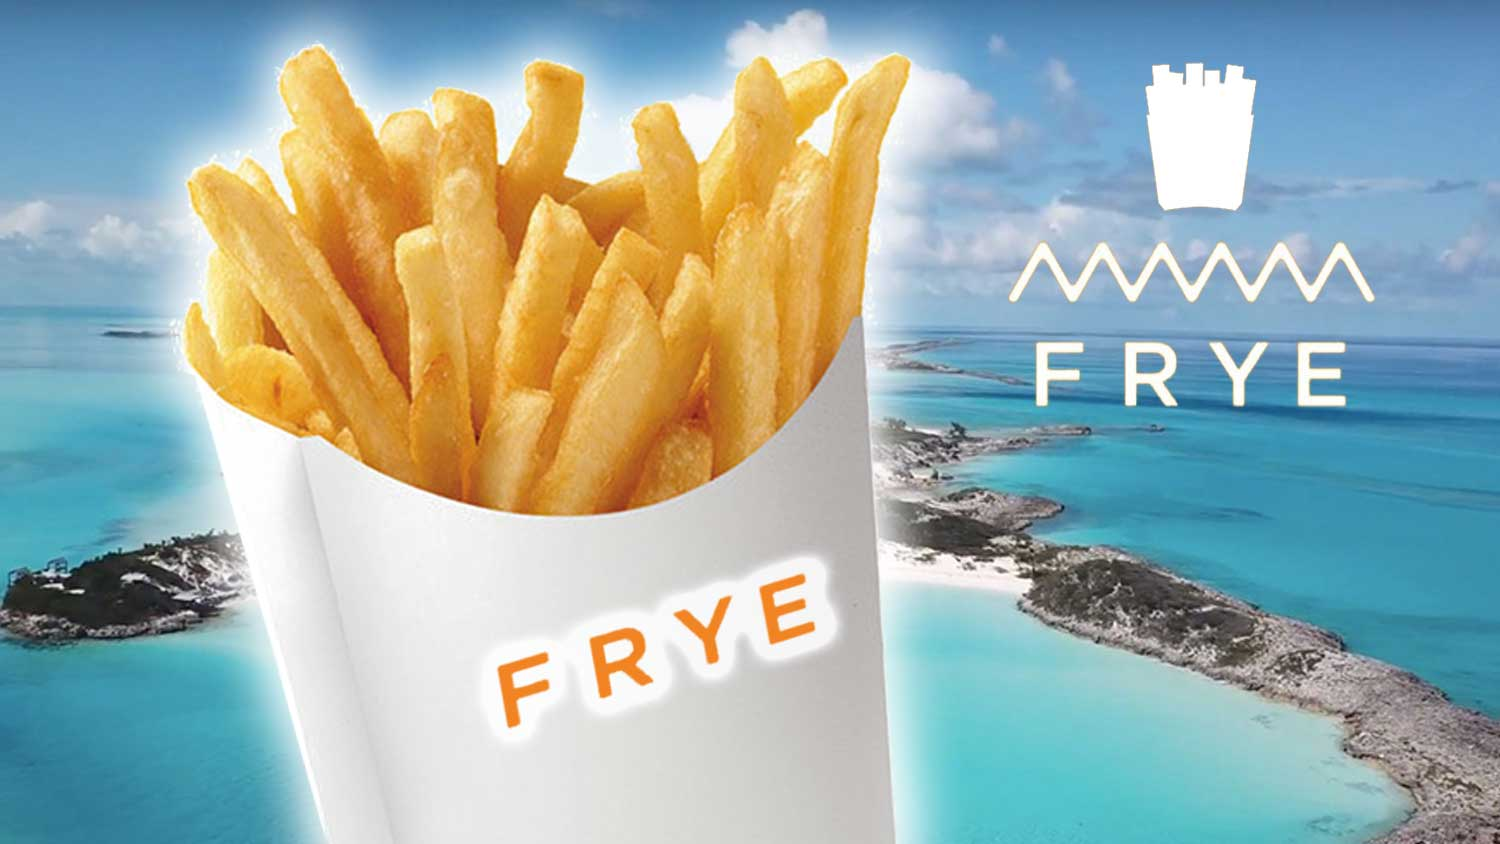 There's Now a 'Frye' Festival and It's Perfect for Hungry Vegans